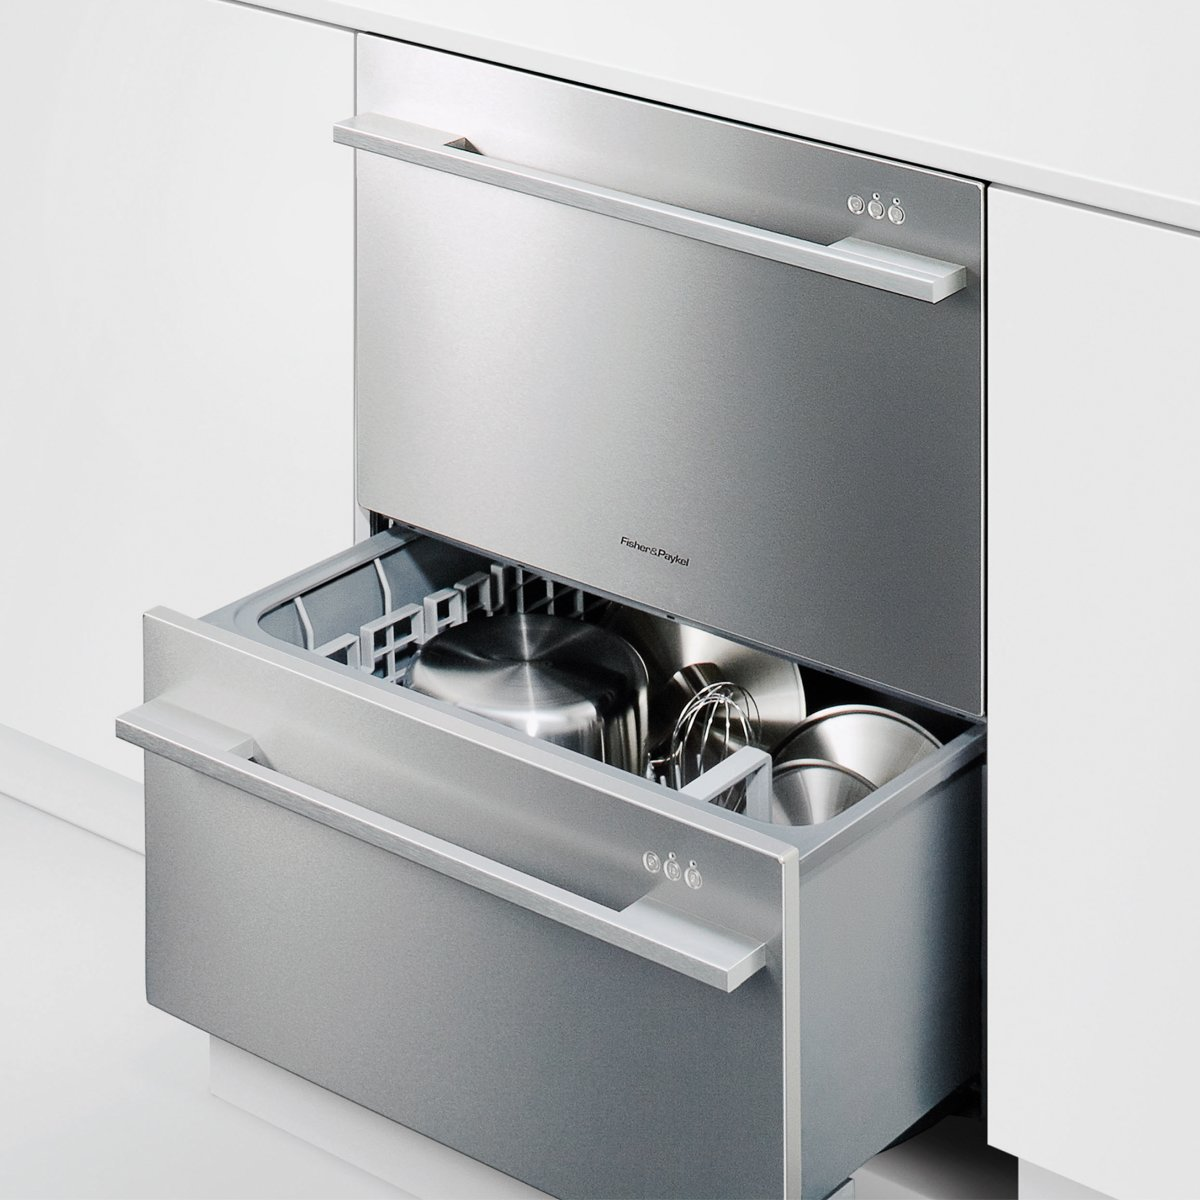 Superior Fisher U0026 Paykel DD60DDFX7 DishDrawer Double Dishwasher | Appliances Online